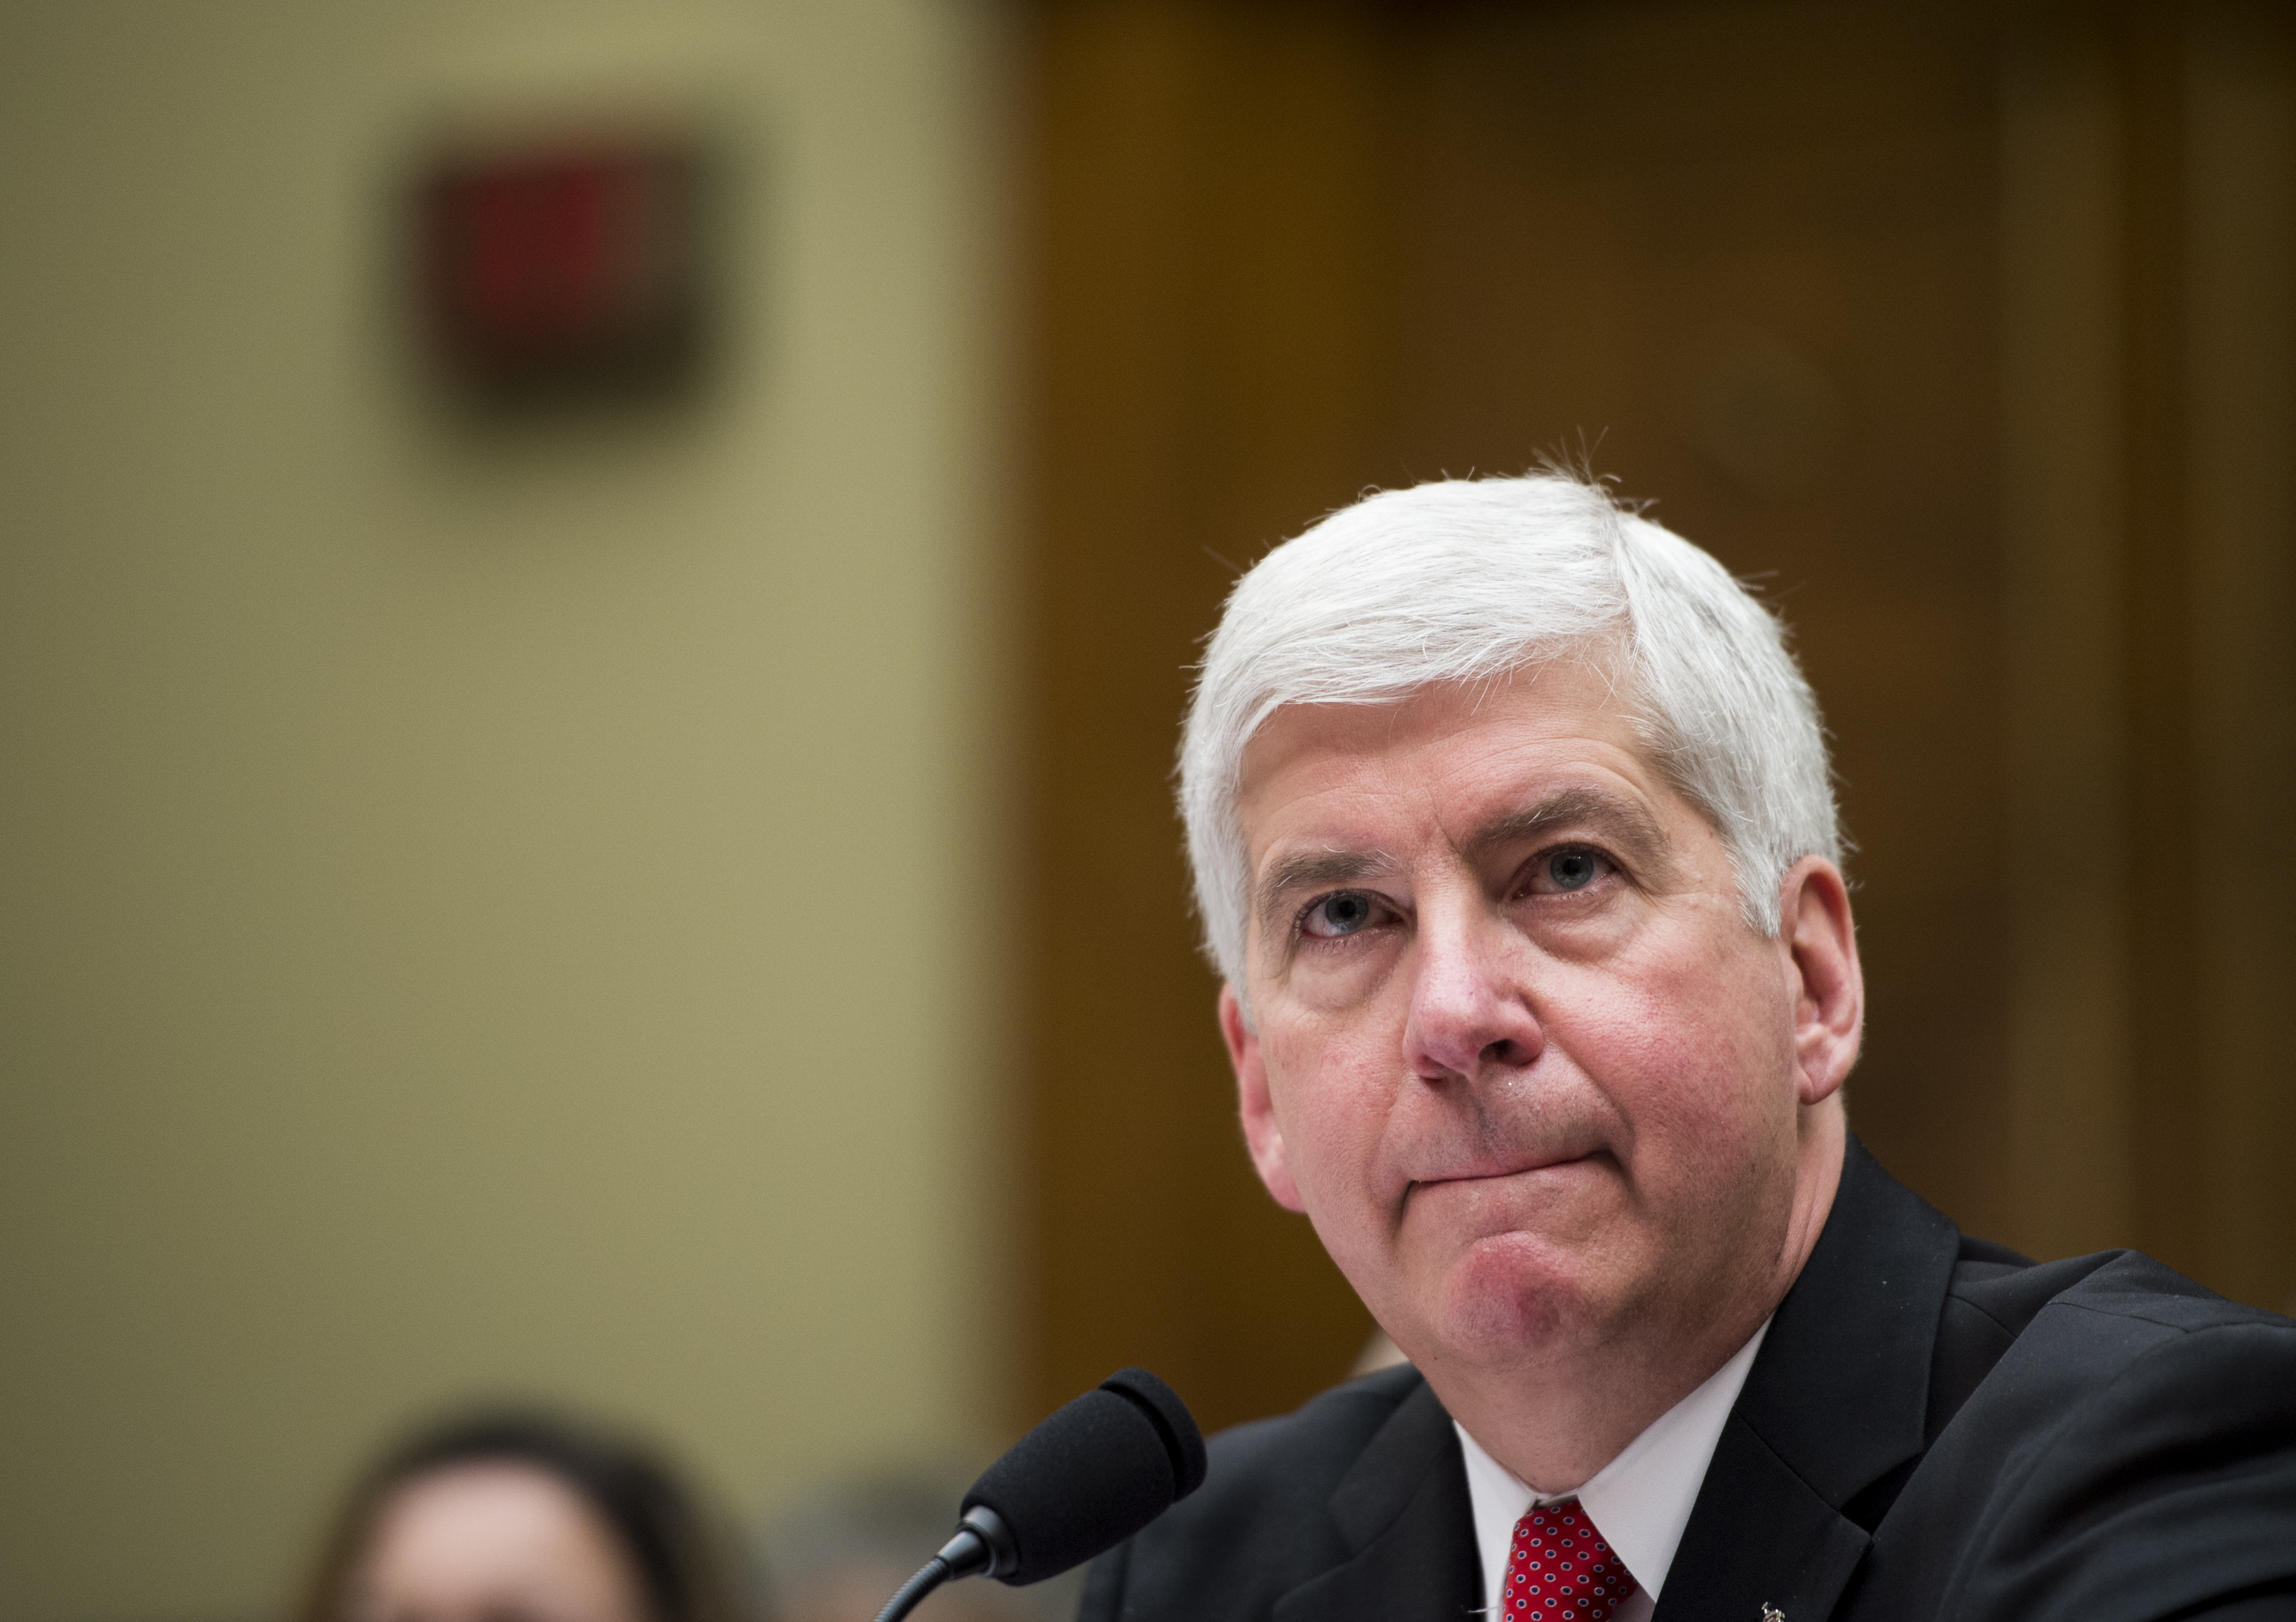 Ex-Michigan Gov. Rick Snyder Will Be Charged 'Soon' For Poisoning Black People In Flint Water Crisis: Report